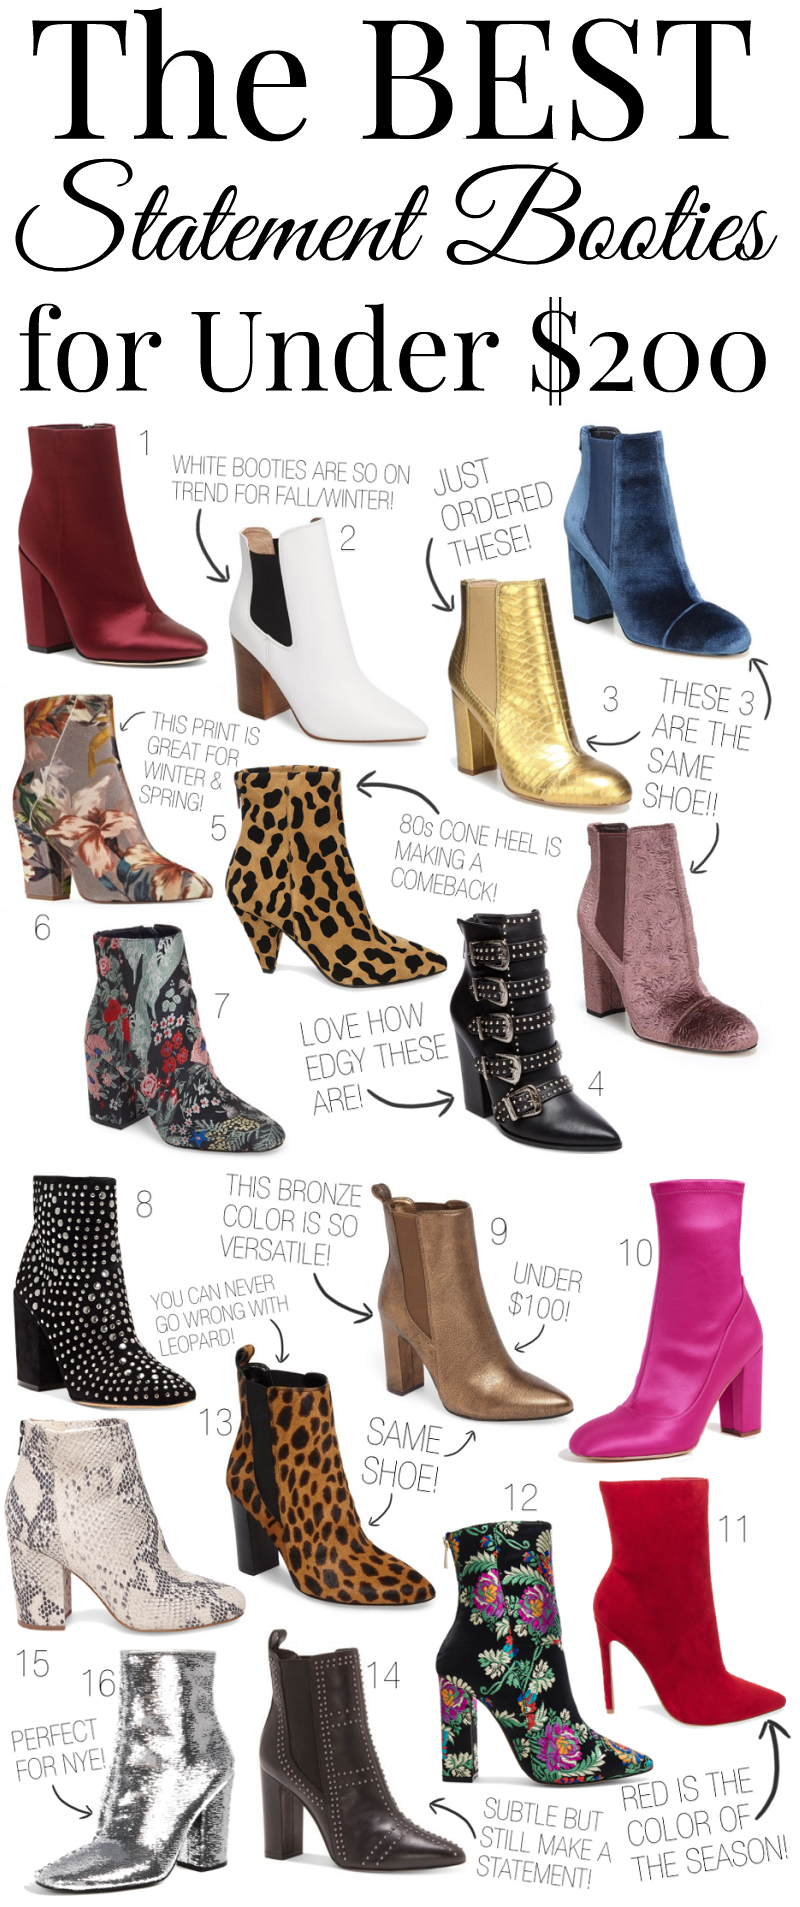 The BEST Statement Booties for Under $200 | Living After Midnite